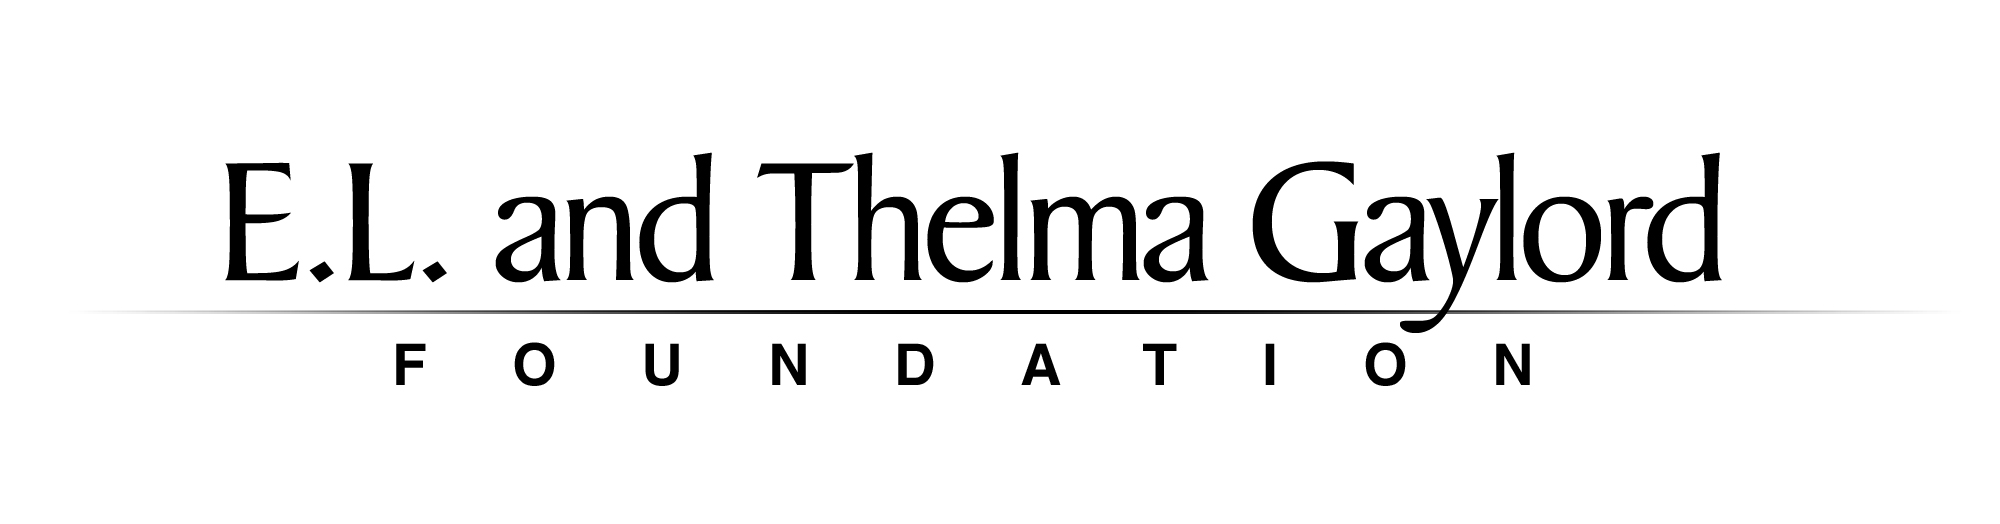 The E. L. and Thelma Gaylord Foundation